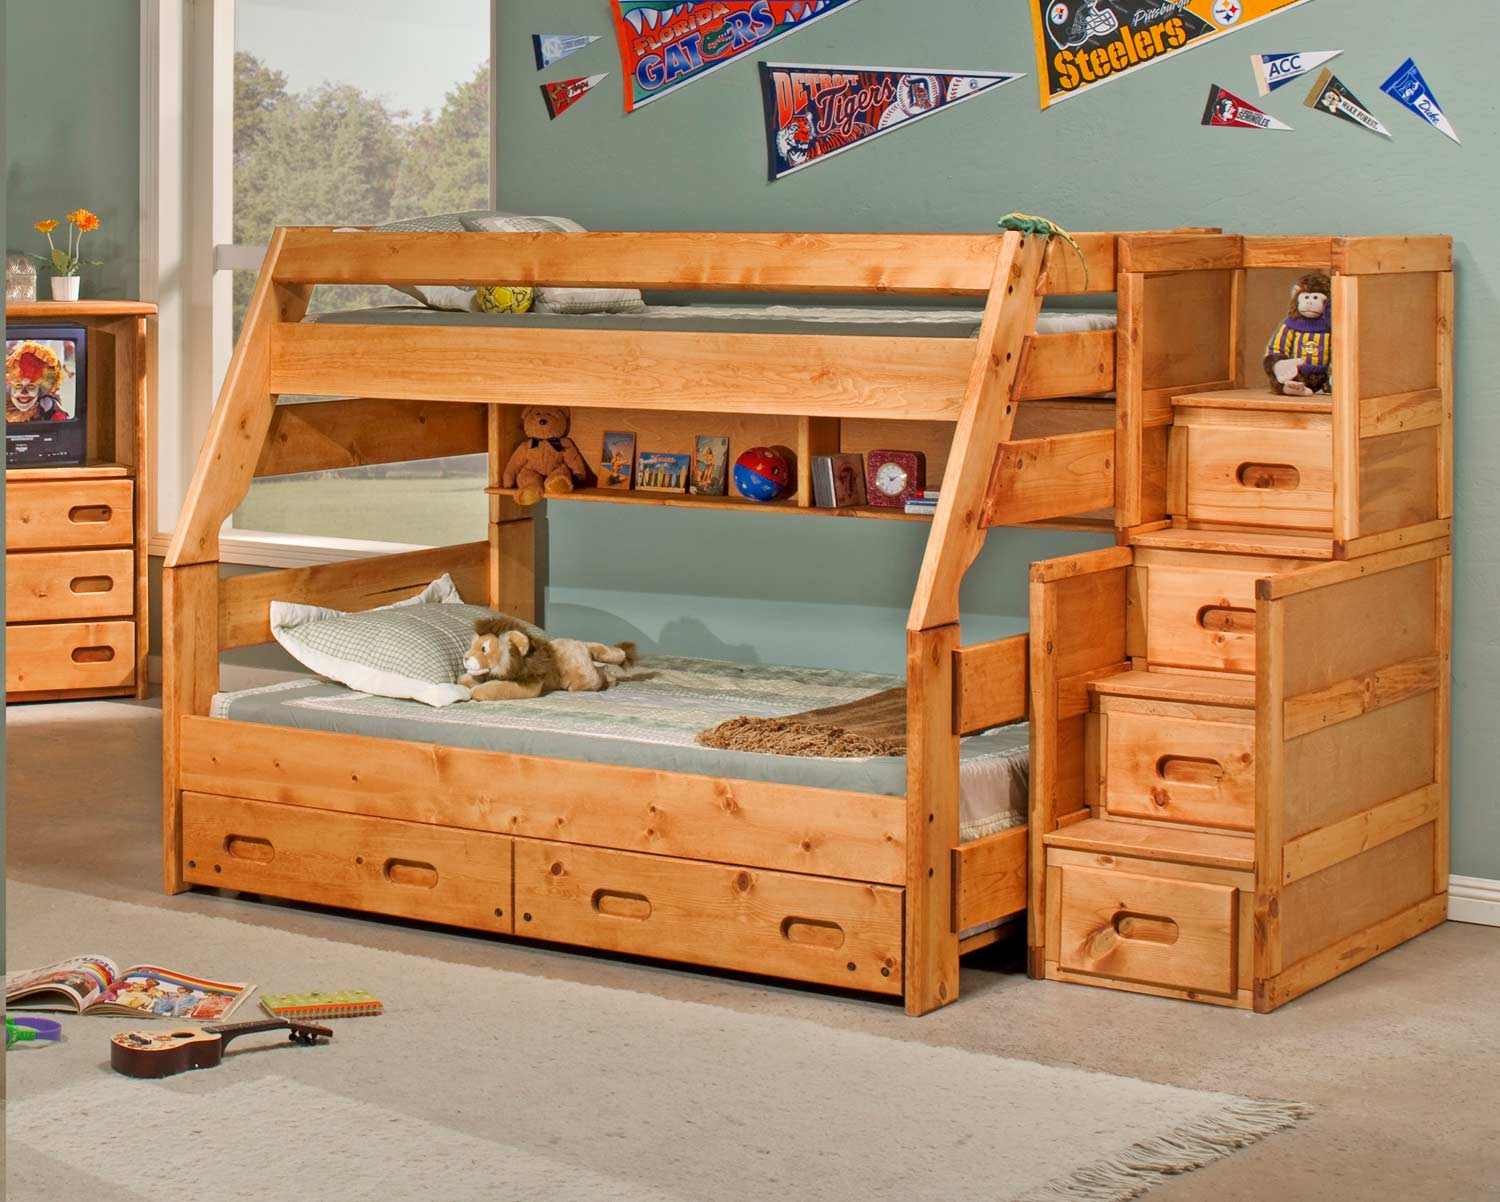 Chelsea Home 3544720-4754-T Twin Over Full Bunk Bed with Trundle and Stairway Chest - Cinnamon